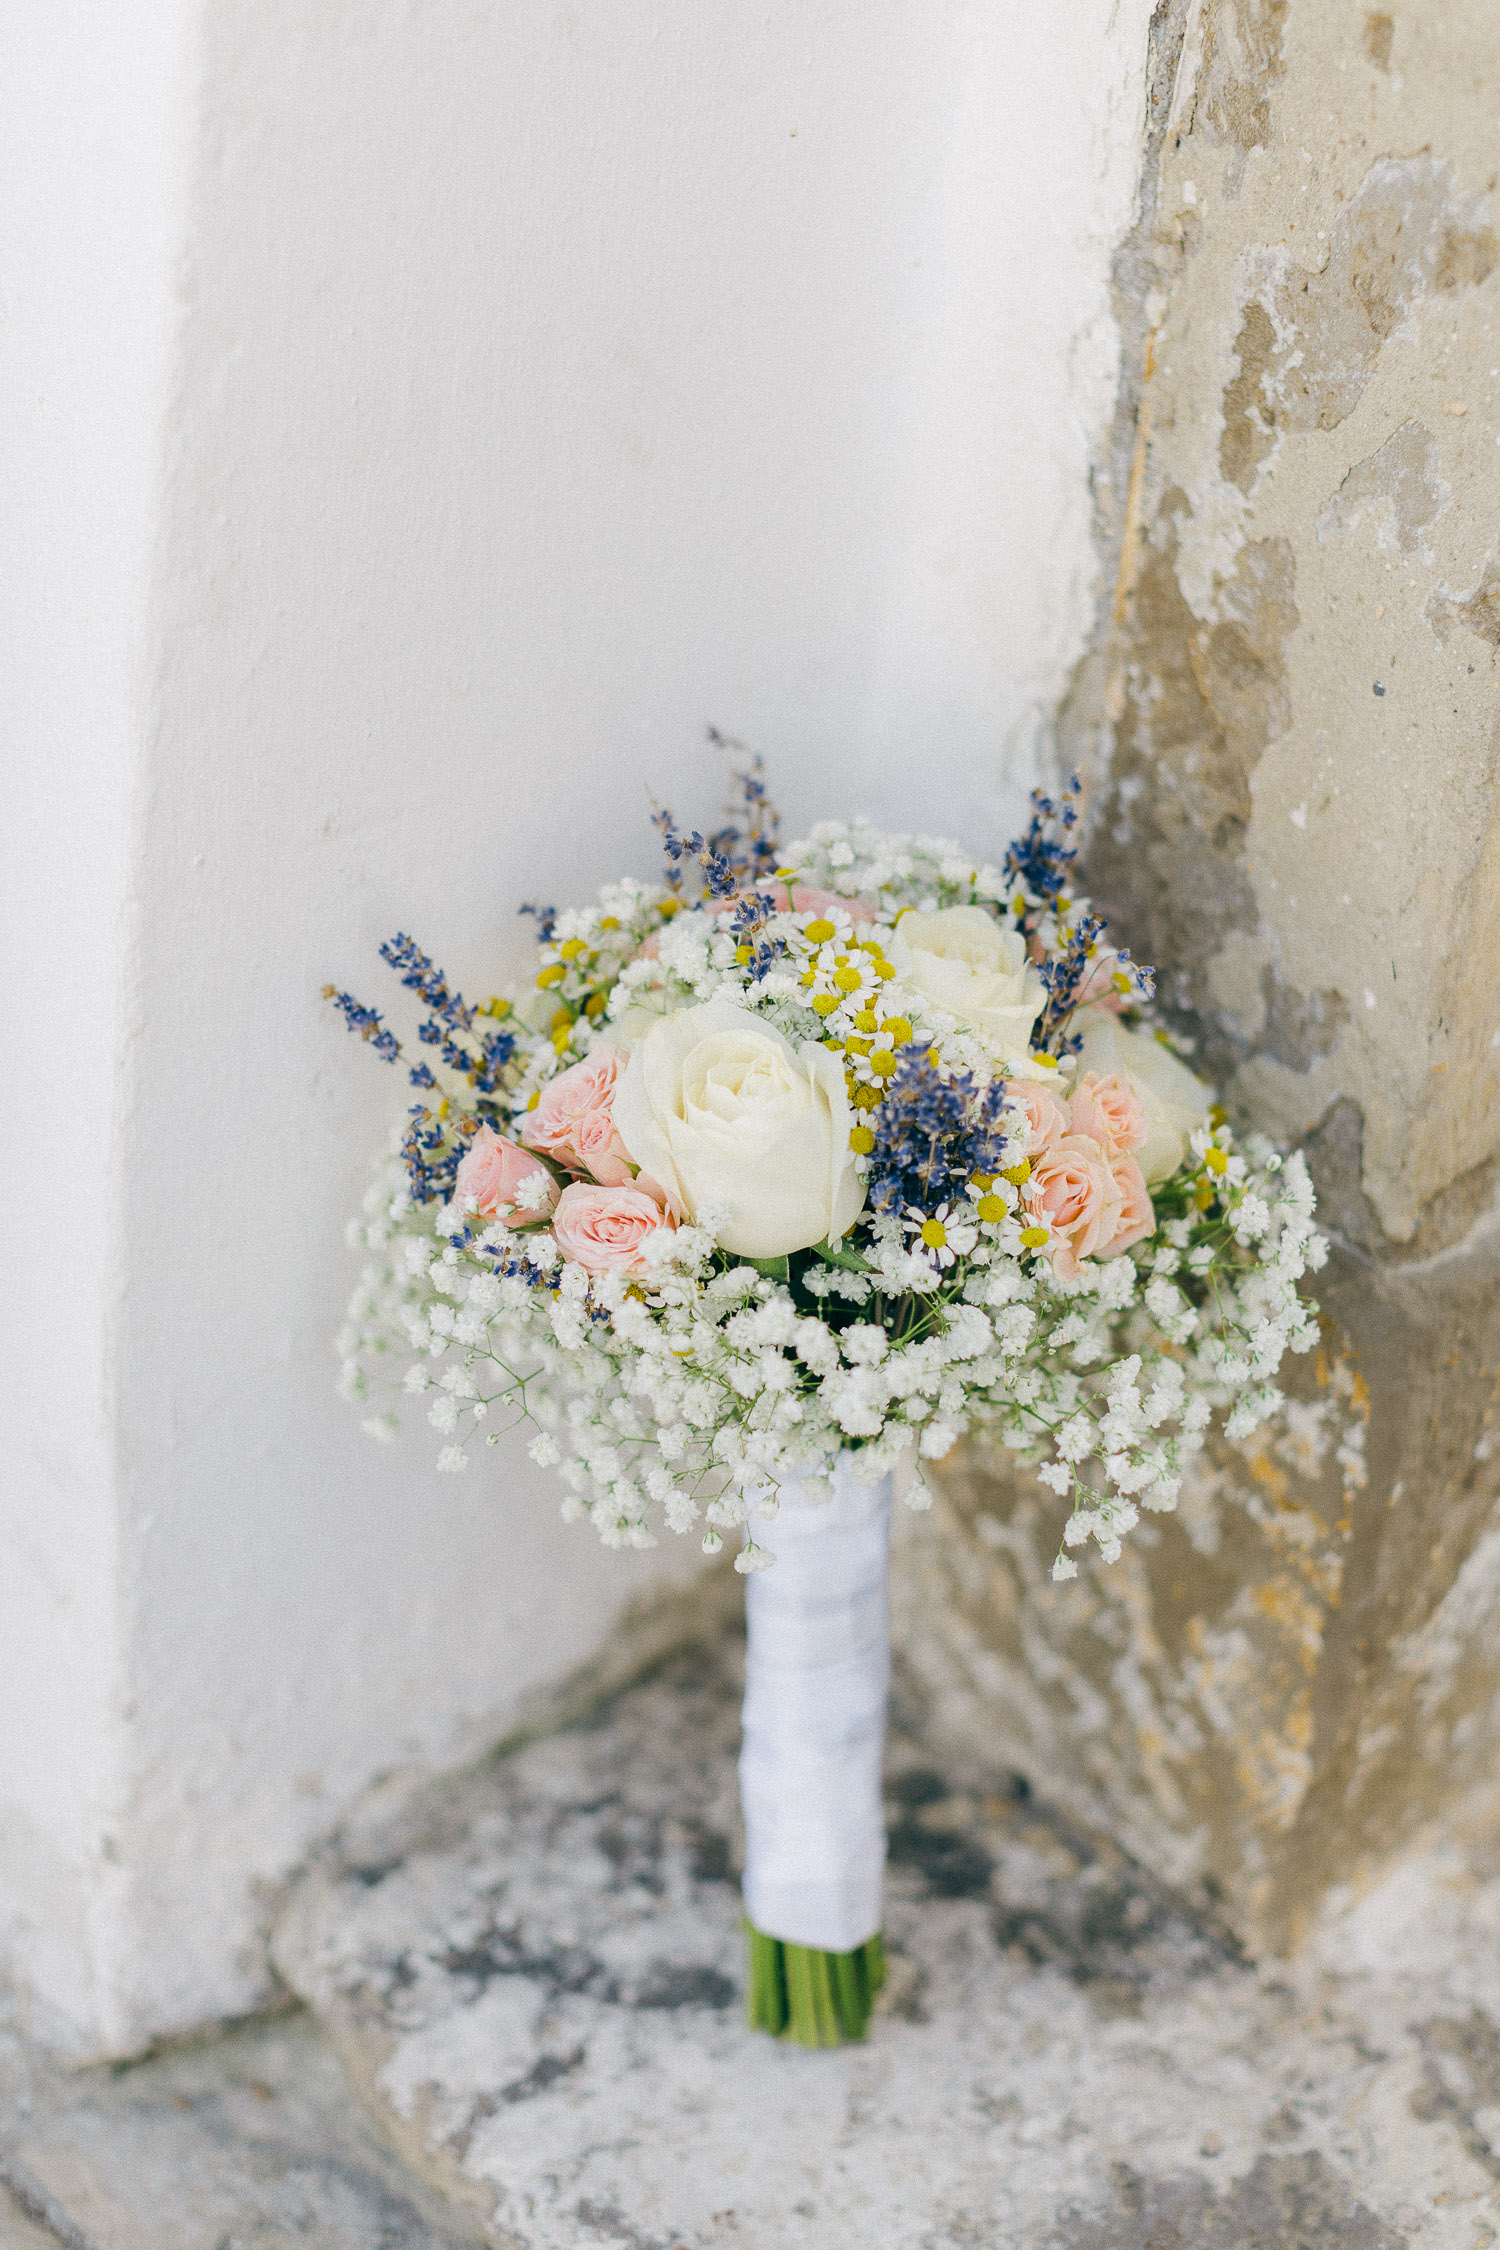 Chic and minimal wedding bouquet full of pink and white roses